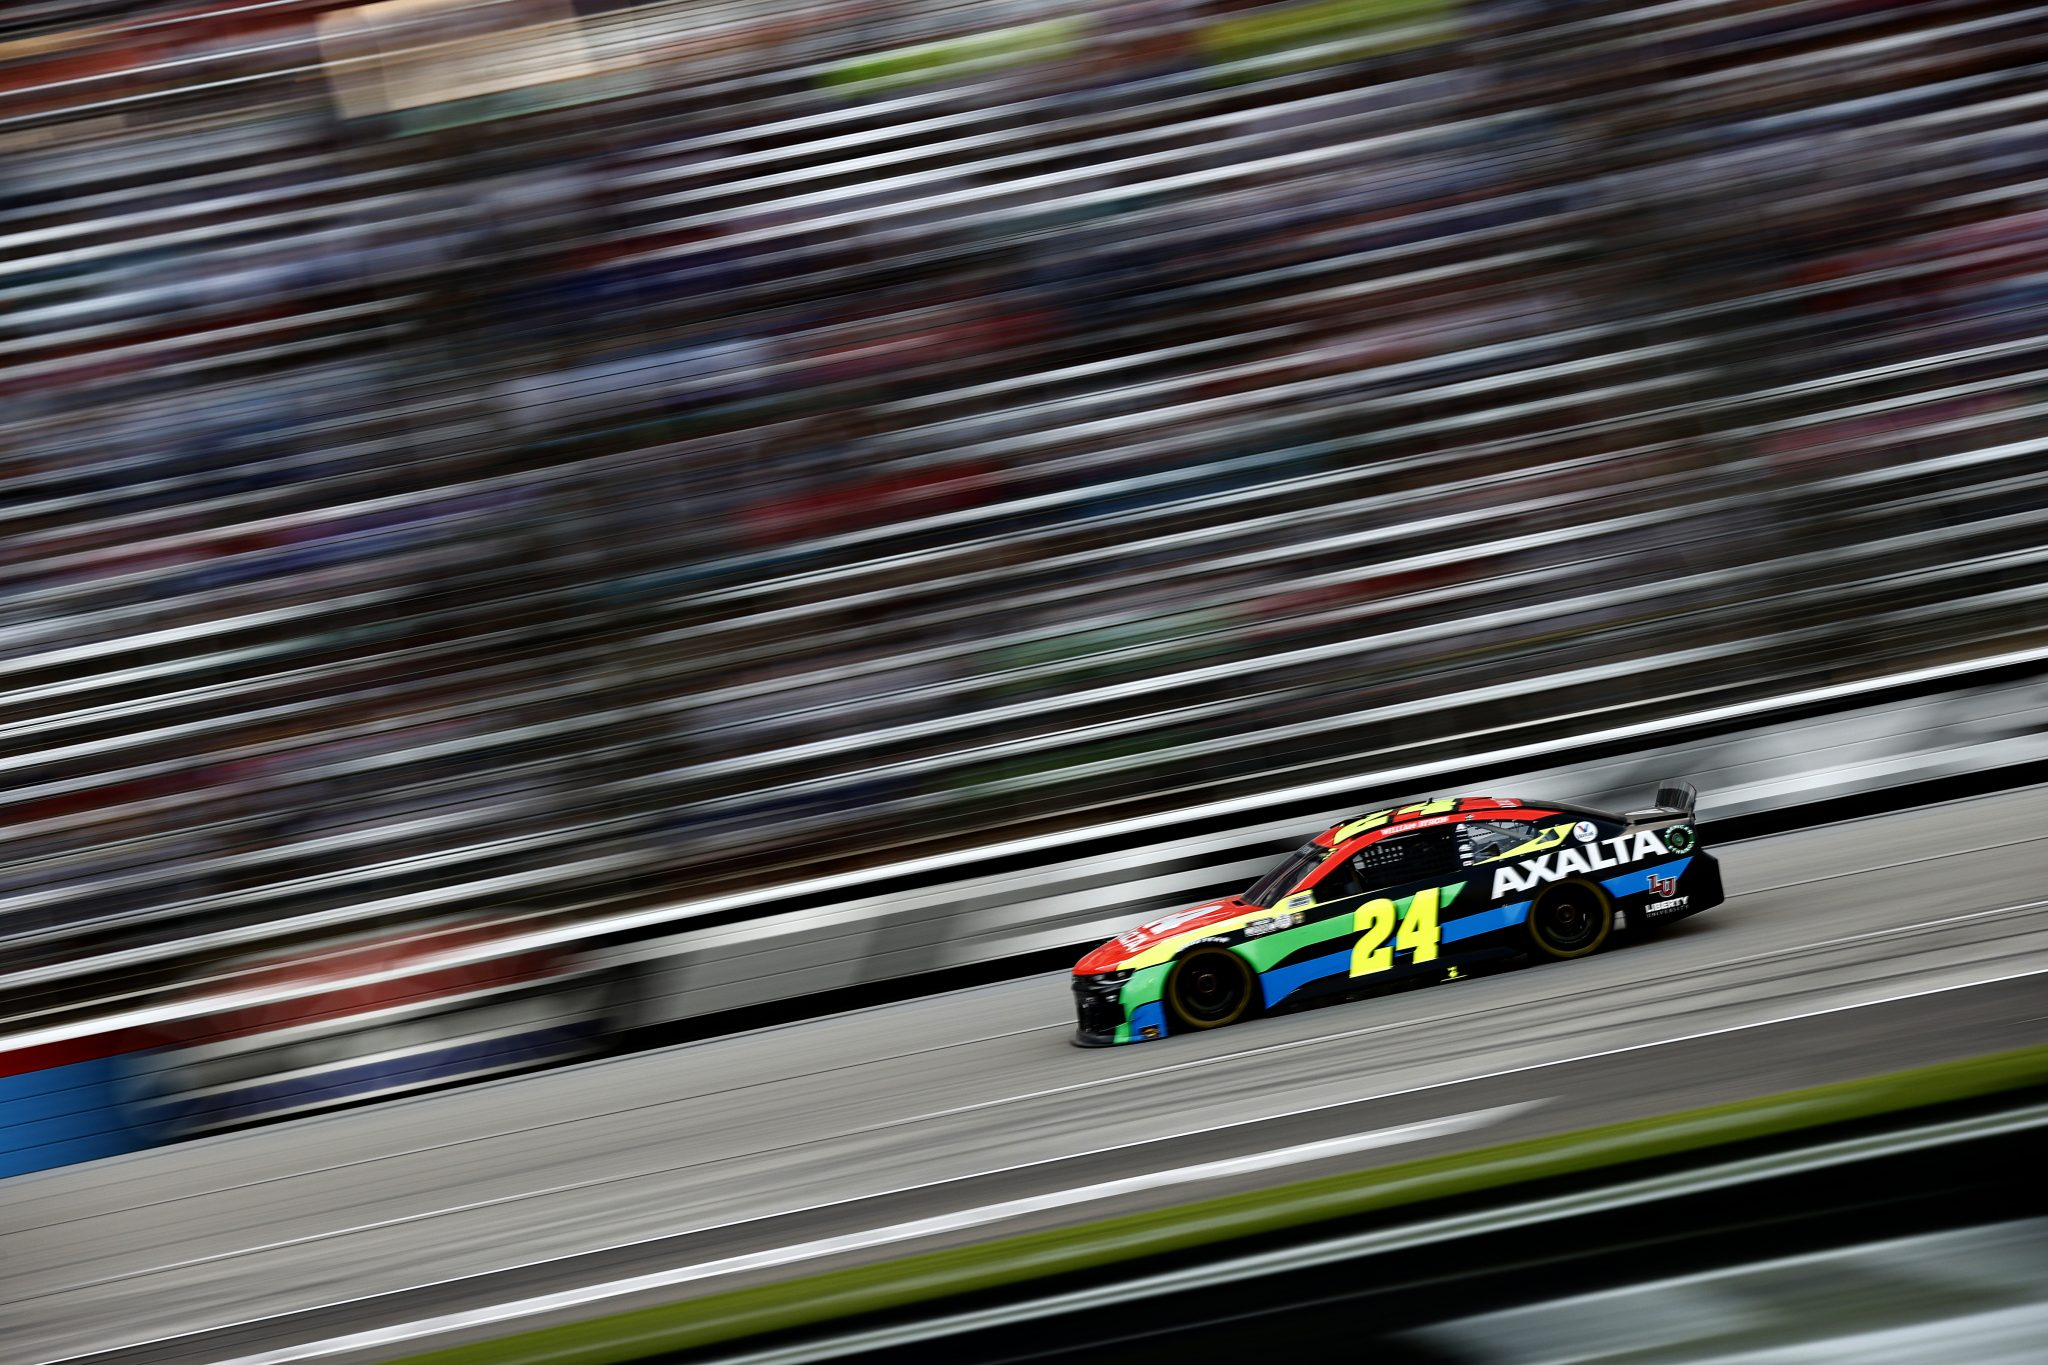 FORT WORTH, TEXAS - JUNE 13: William Byron, driver of the #24 Axalta Chevrolet, drives during the NASCAR All-Star Race at Texas Motor Speedway on June 13, 2021 in Fort Worth, Texas. (Photo by Jared C. Tilton/Getty Images)   Getty Images